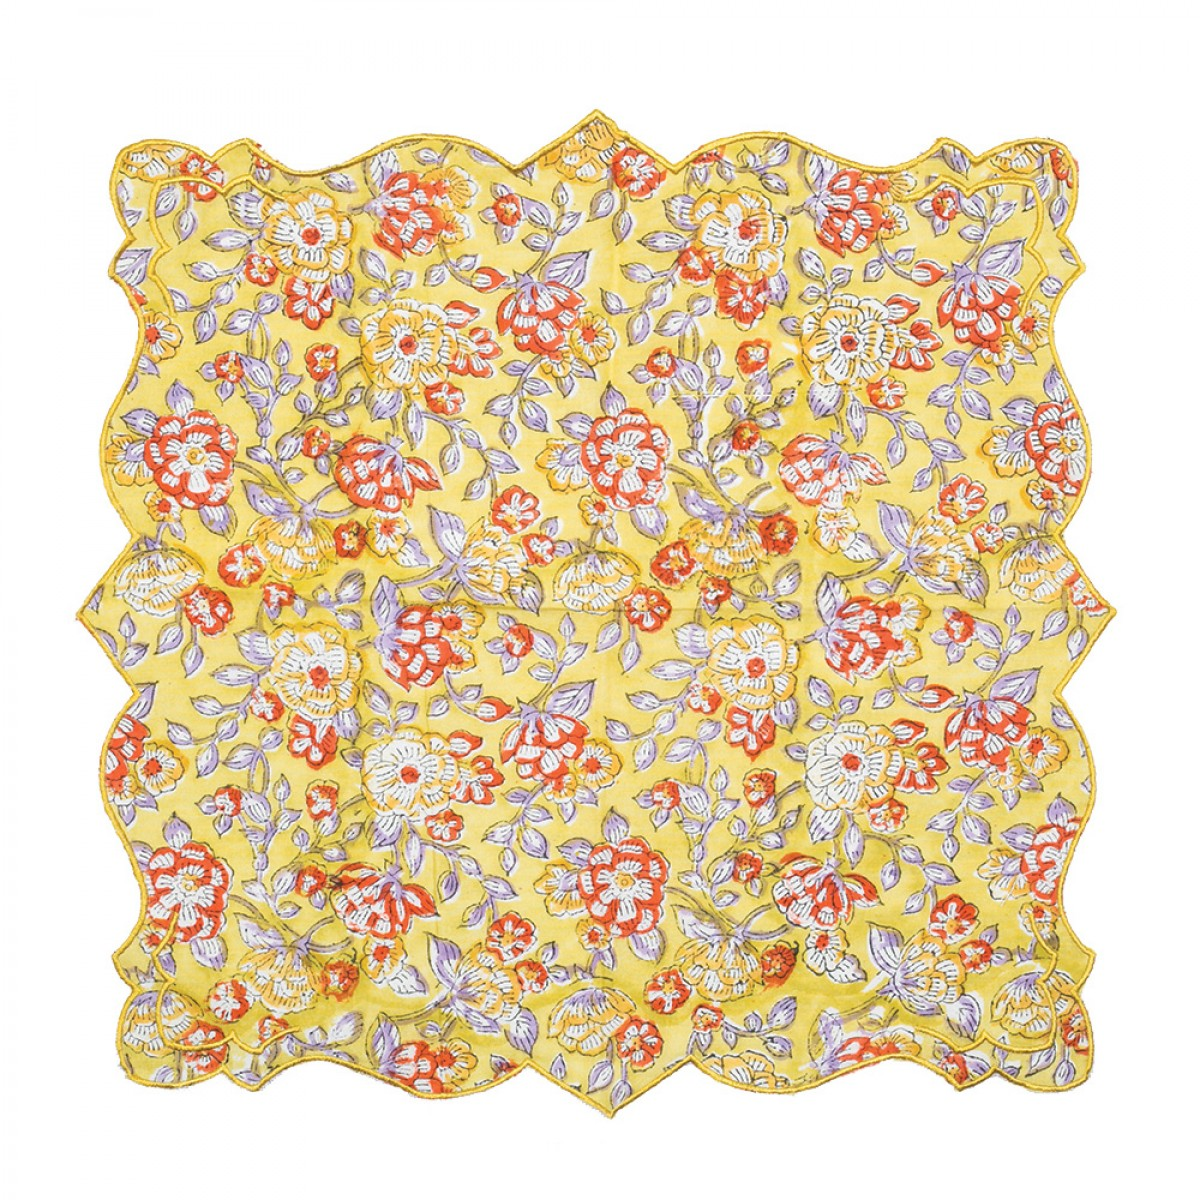 Cotton Scallop Embroidered Printed Napkin - Mustard (Set of 6)